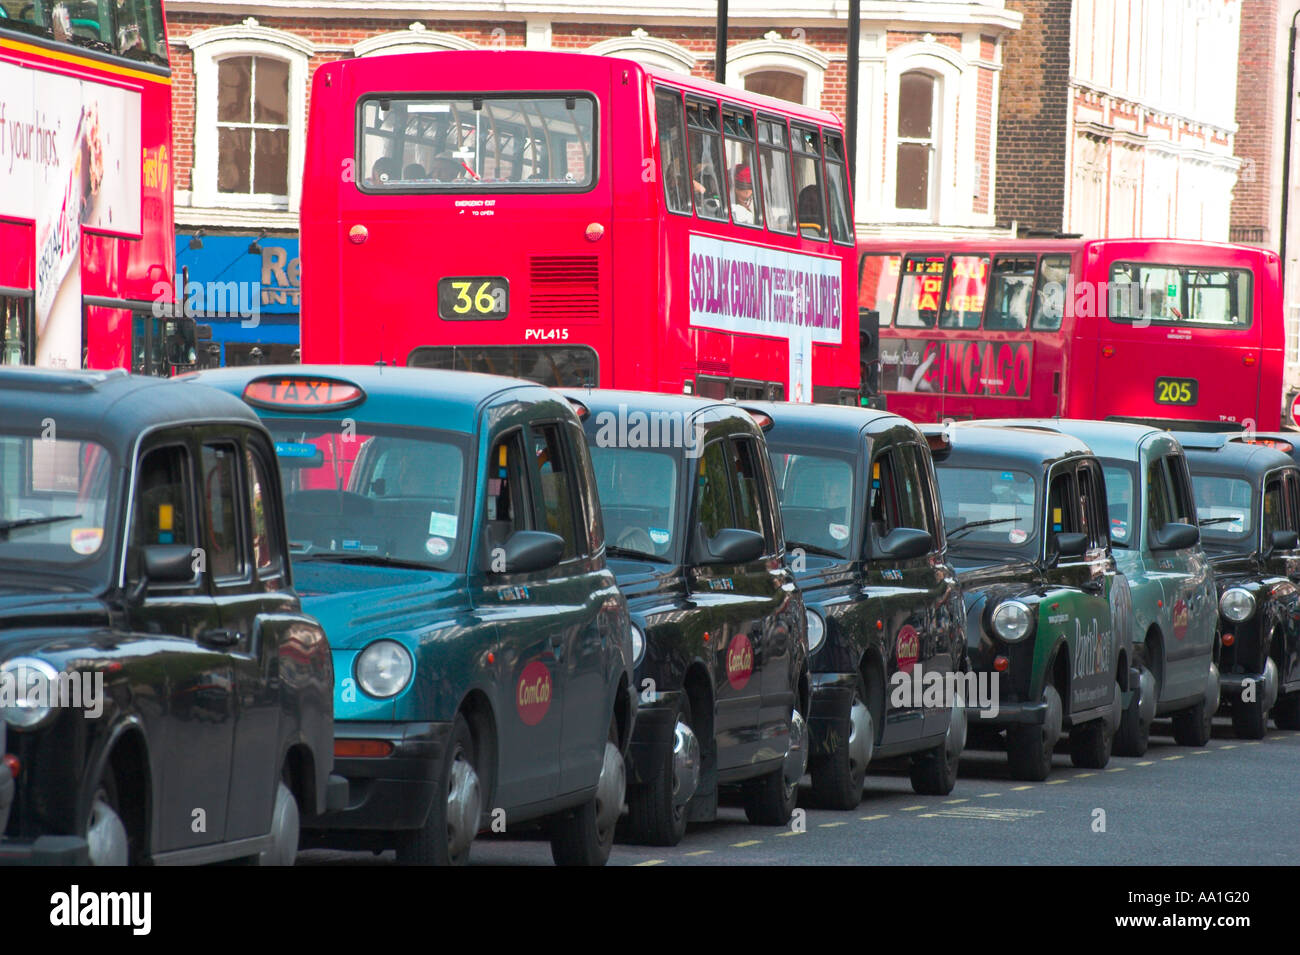 London taxi taxis taxi noir Photo Stock